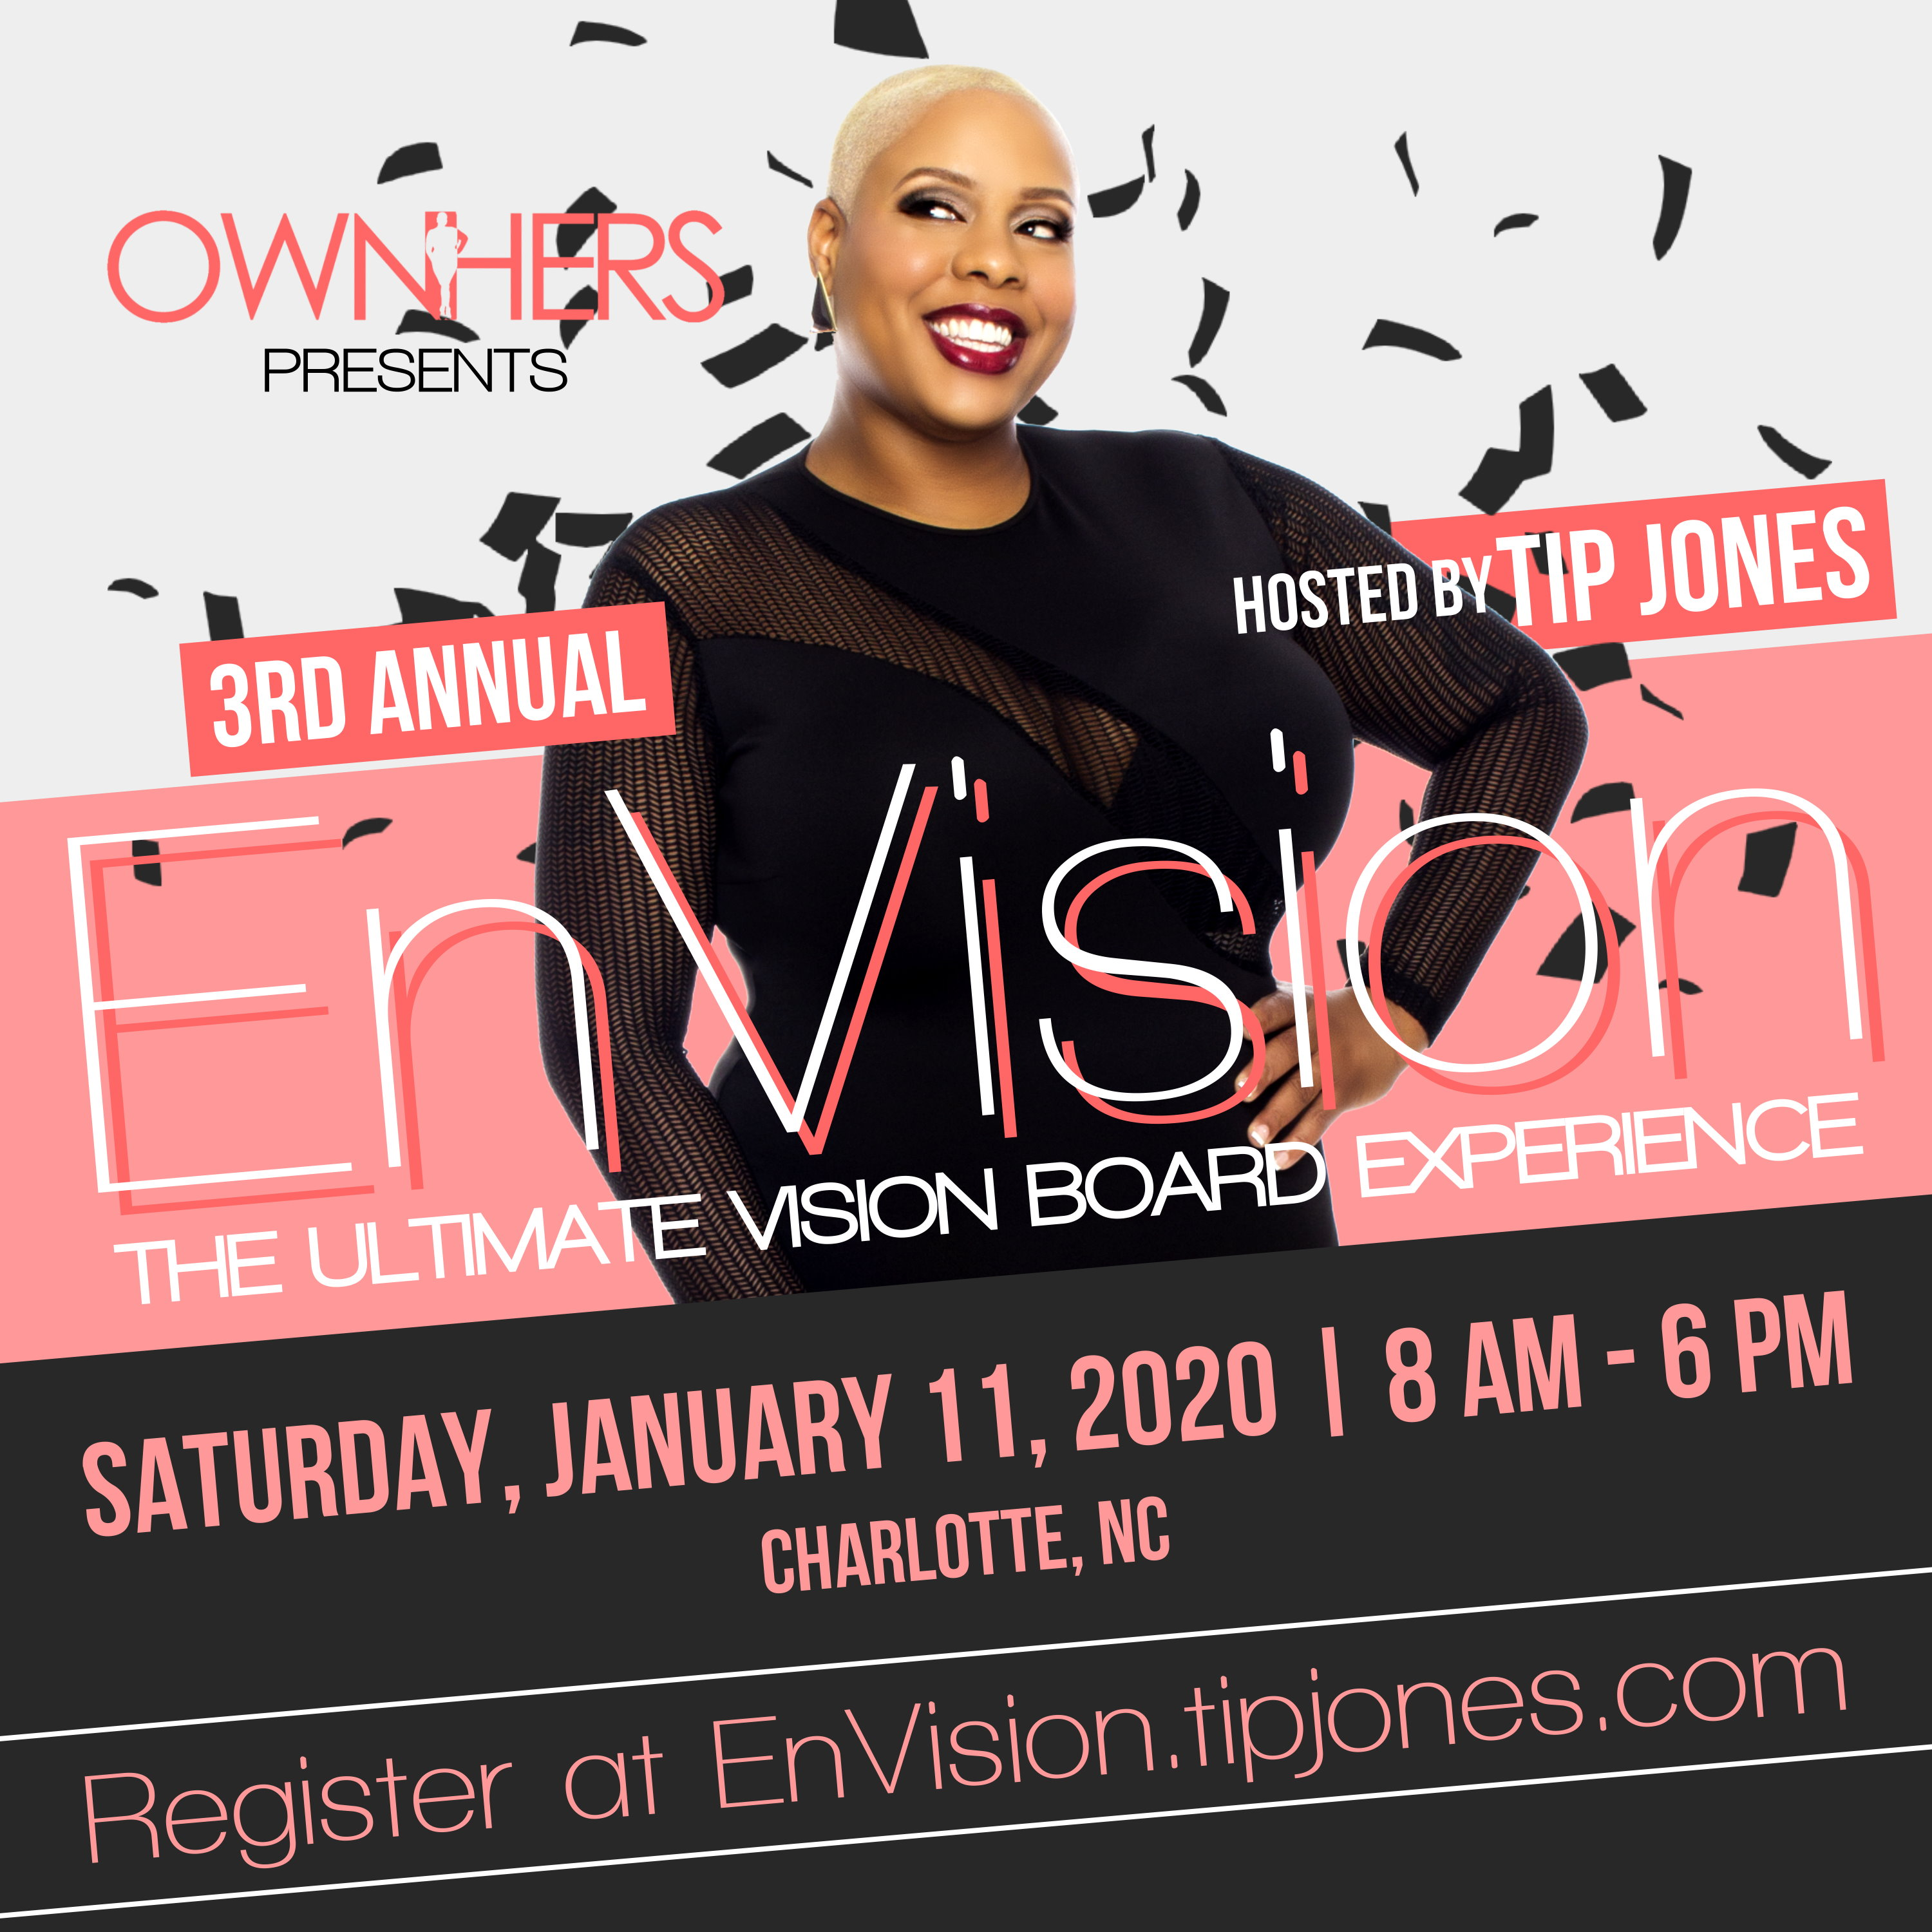 OwnHers presents 3rd Annual EnVision: The Ultimate Vision Board Event hosted by Tip Jones